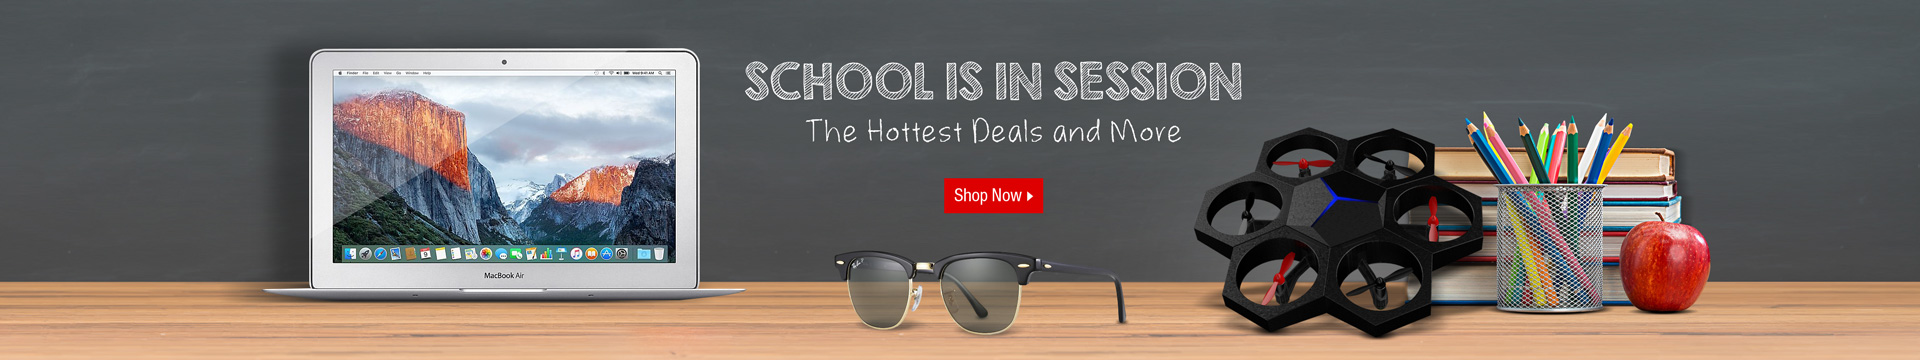 The Hottest Deals and More